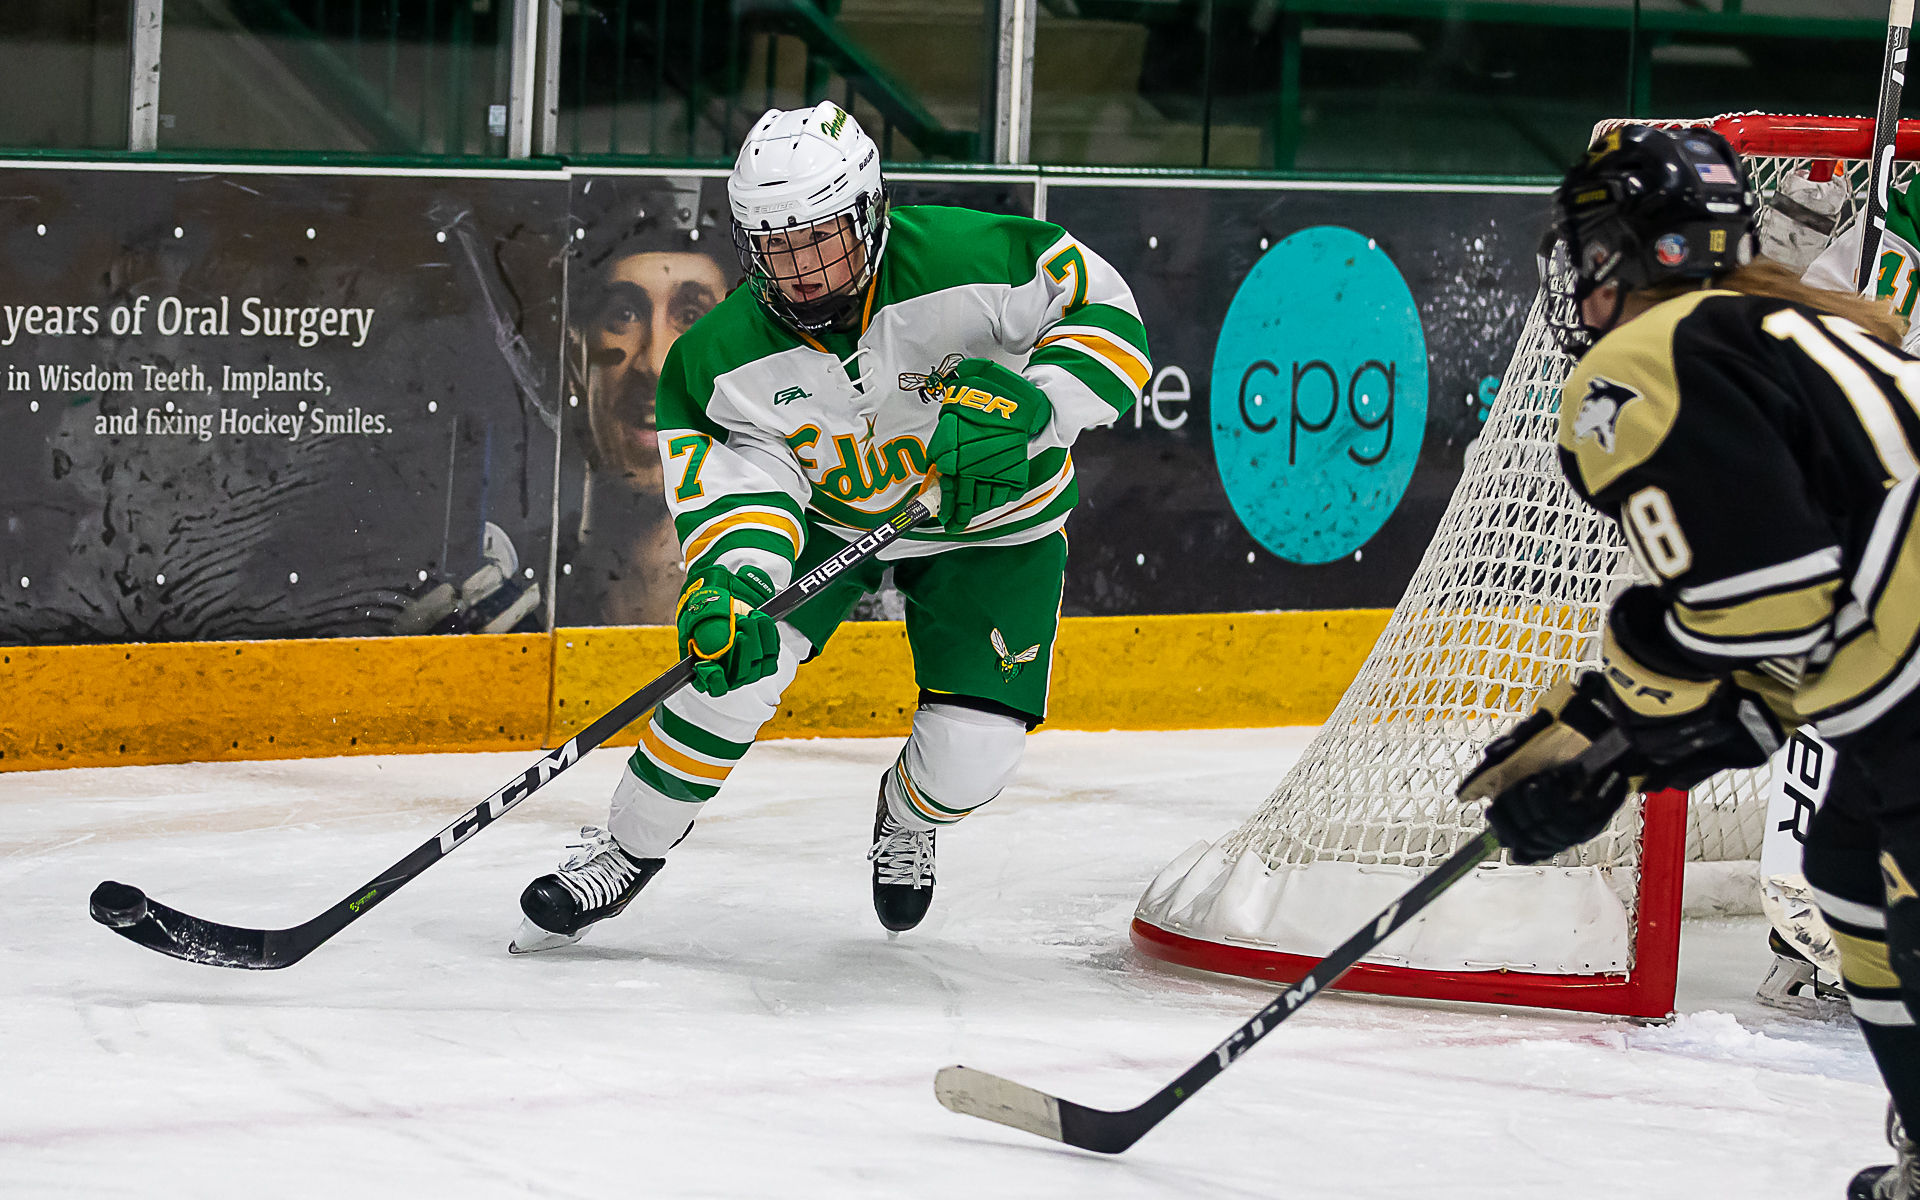 Edina junior defender Lily Hendrikson breaks the puck out against visiting Andover. The Huskies defeated the Hornets 1-0 Thursday night. Photo by Gary Mukai, SportsEngine